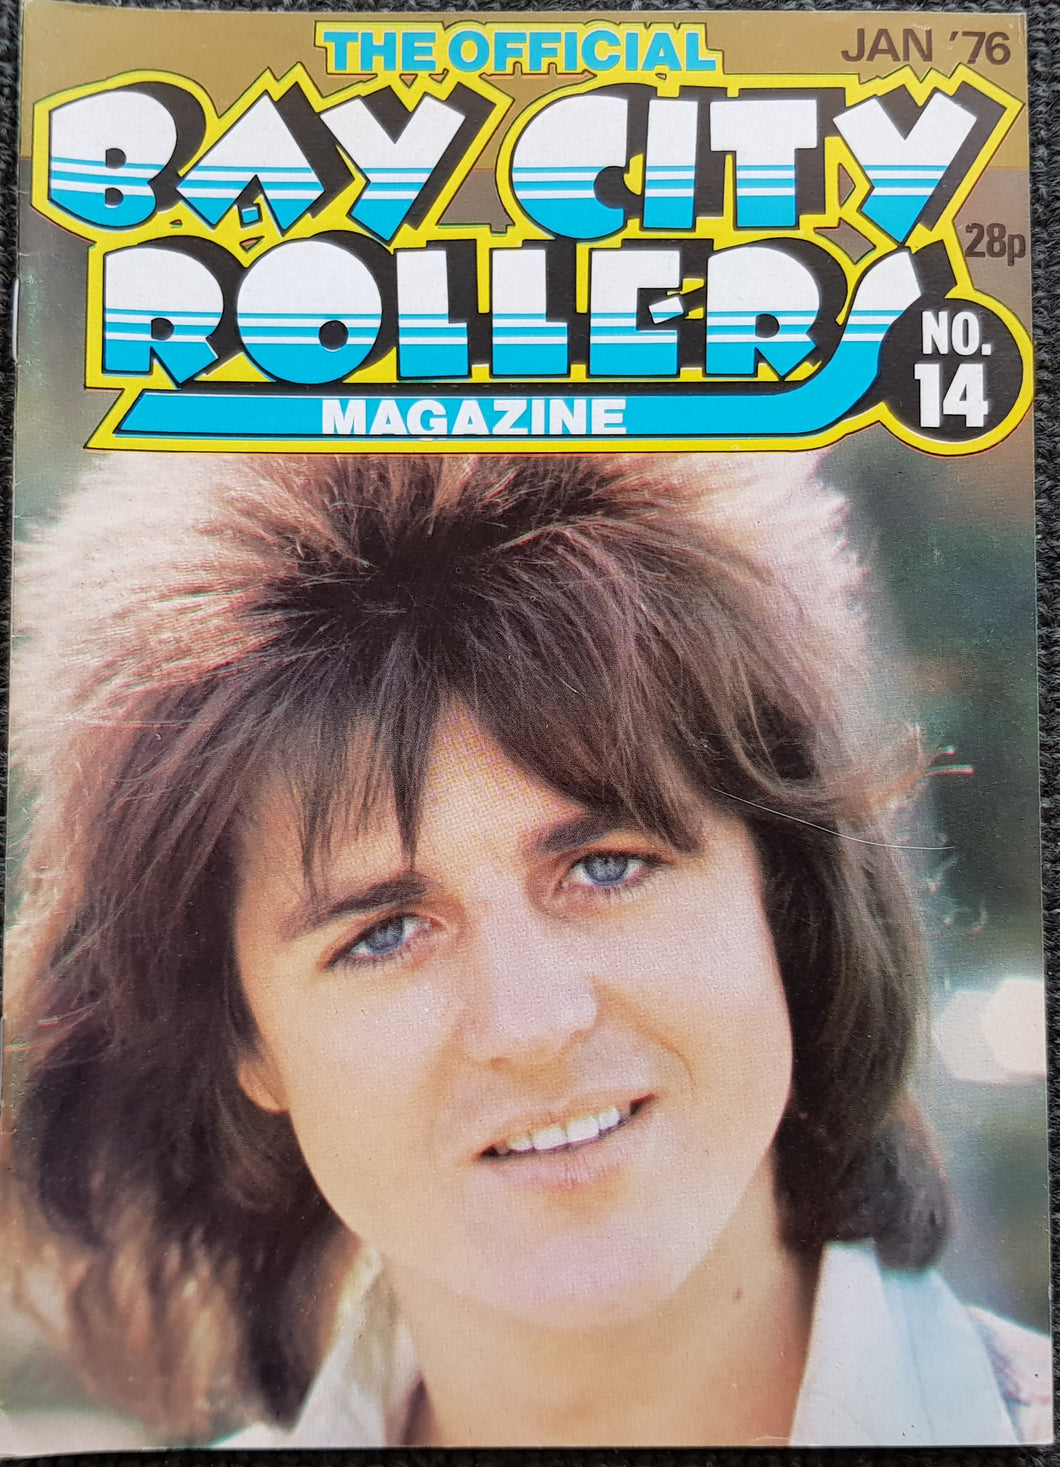 Bay City Rollers - The Official Bay City Rollers Magazine No.14